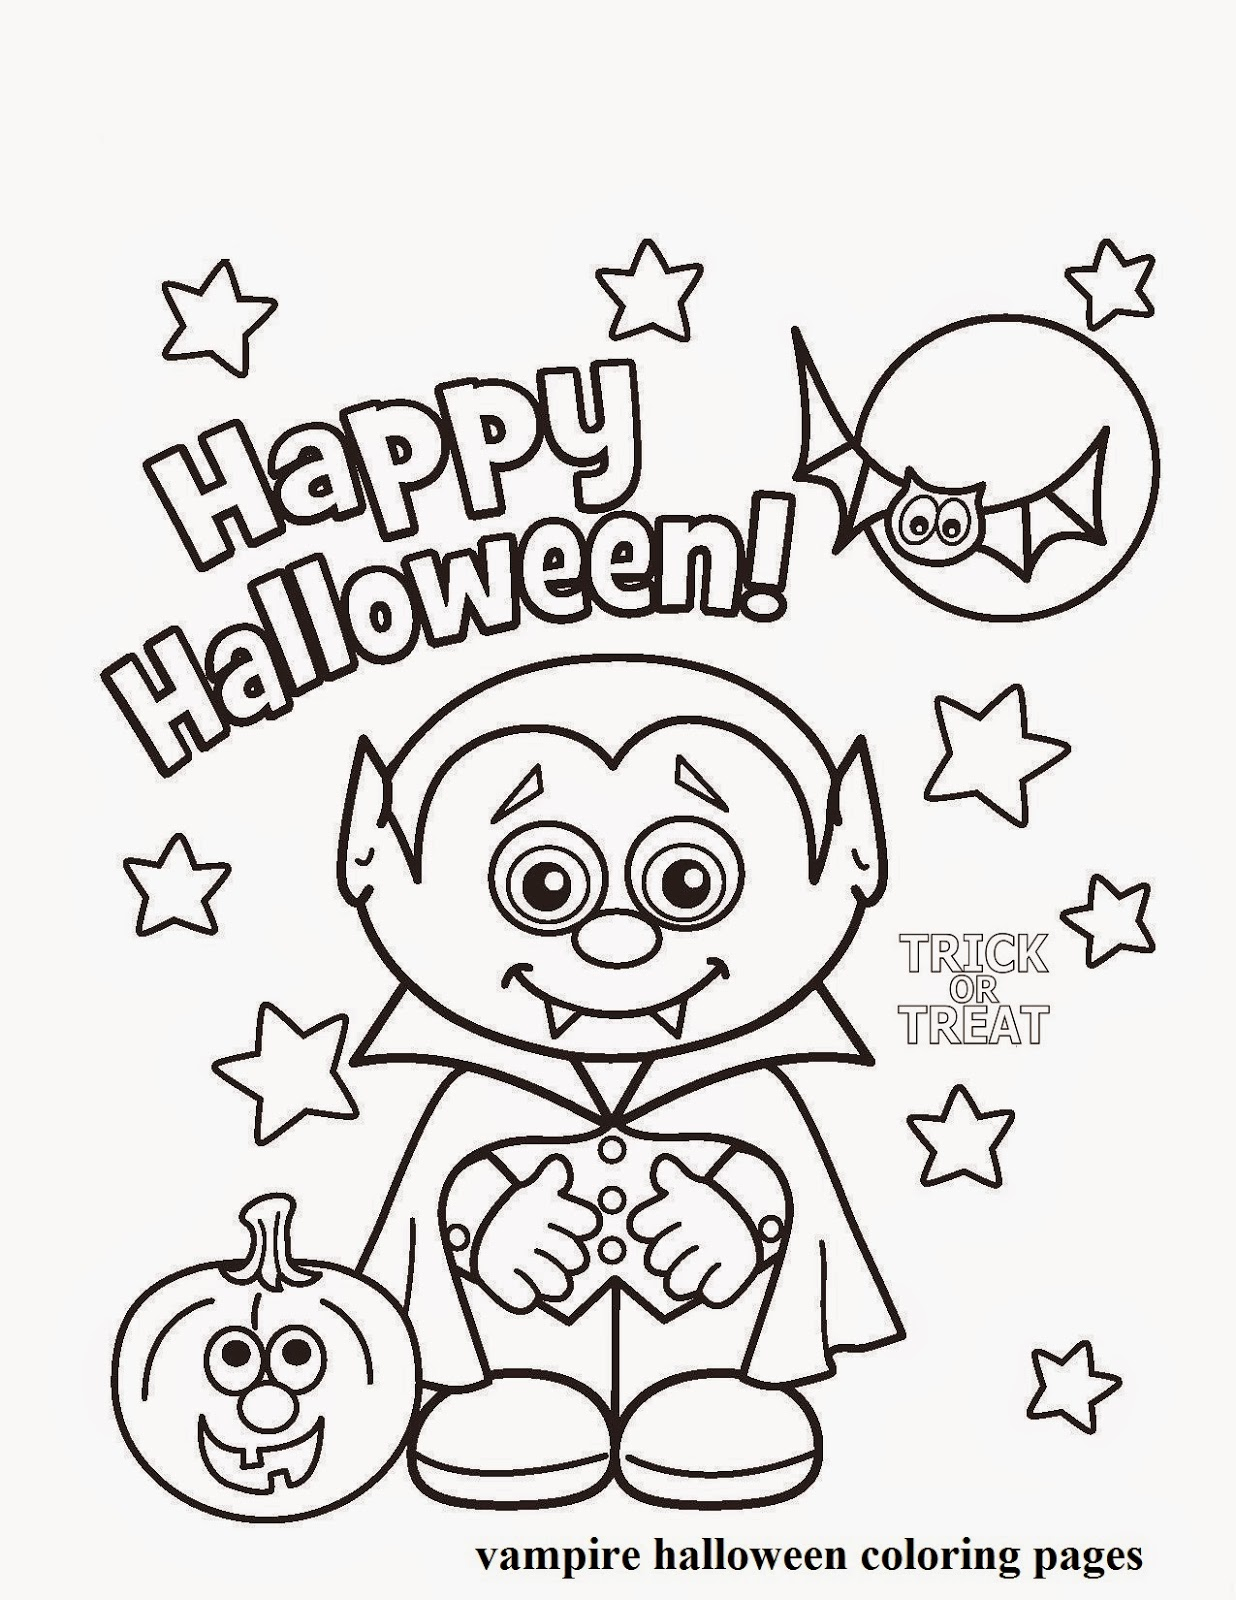 Vampire Halloween Coloring Pages